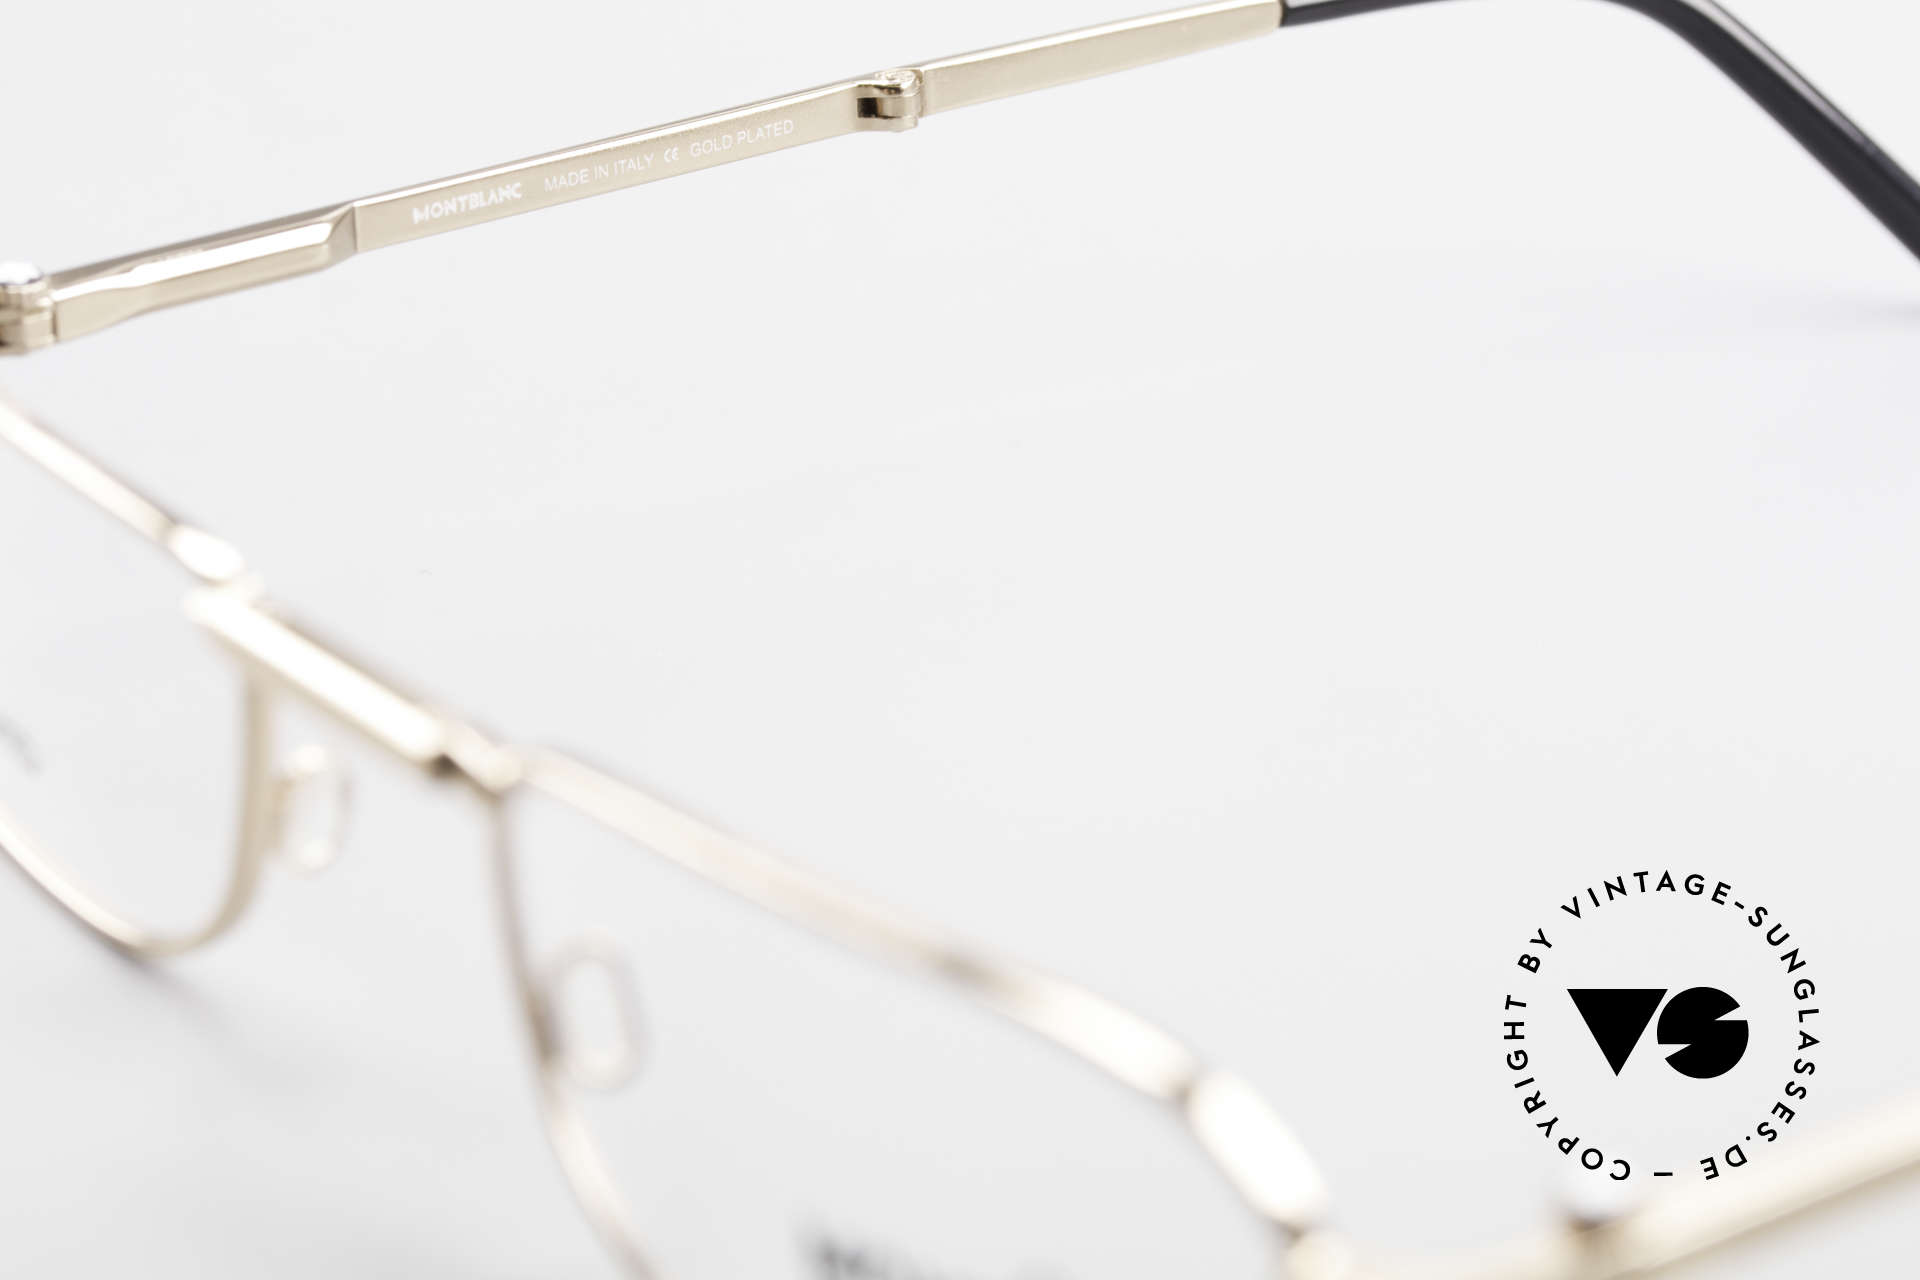 Montblanc MB30 Folding Gold Plated Luxury Eyeglasses, NO RETRO glasses, but an old ORIGINAL from 1999, Made for Men